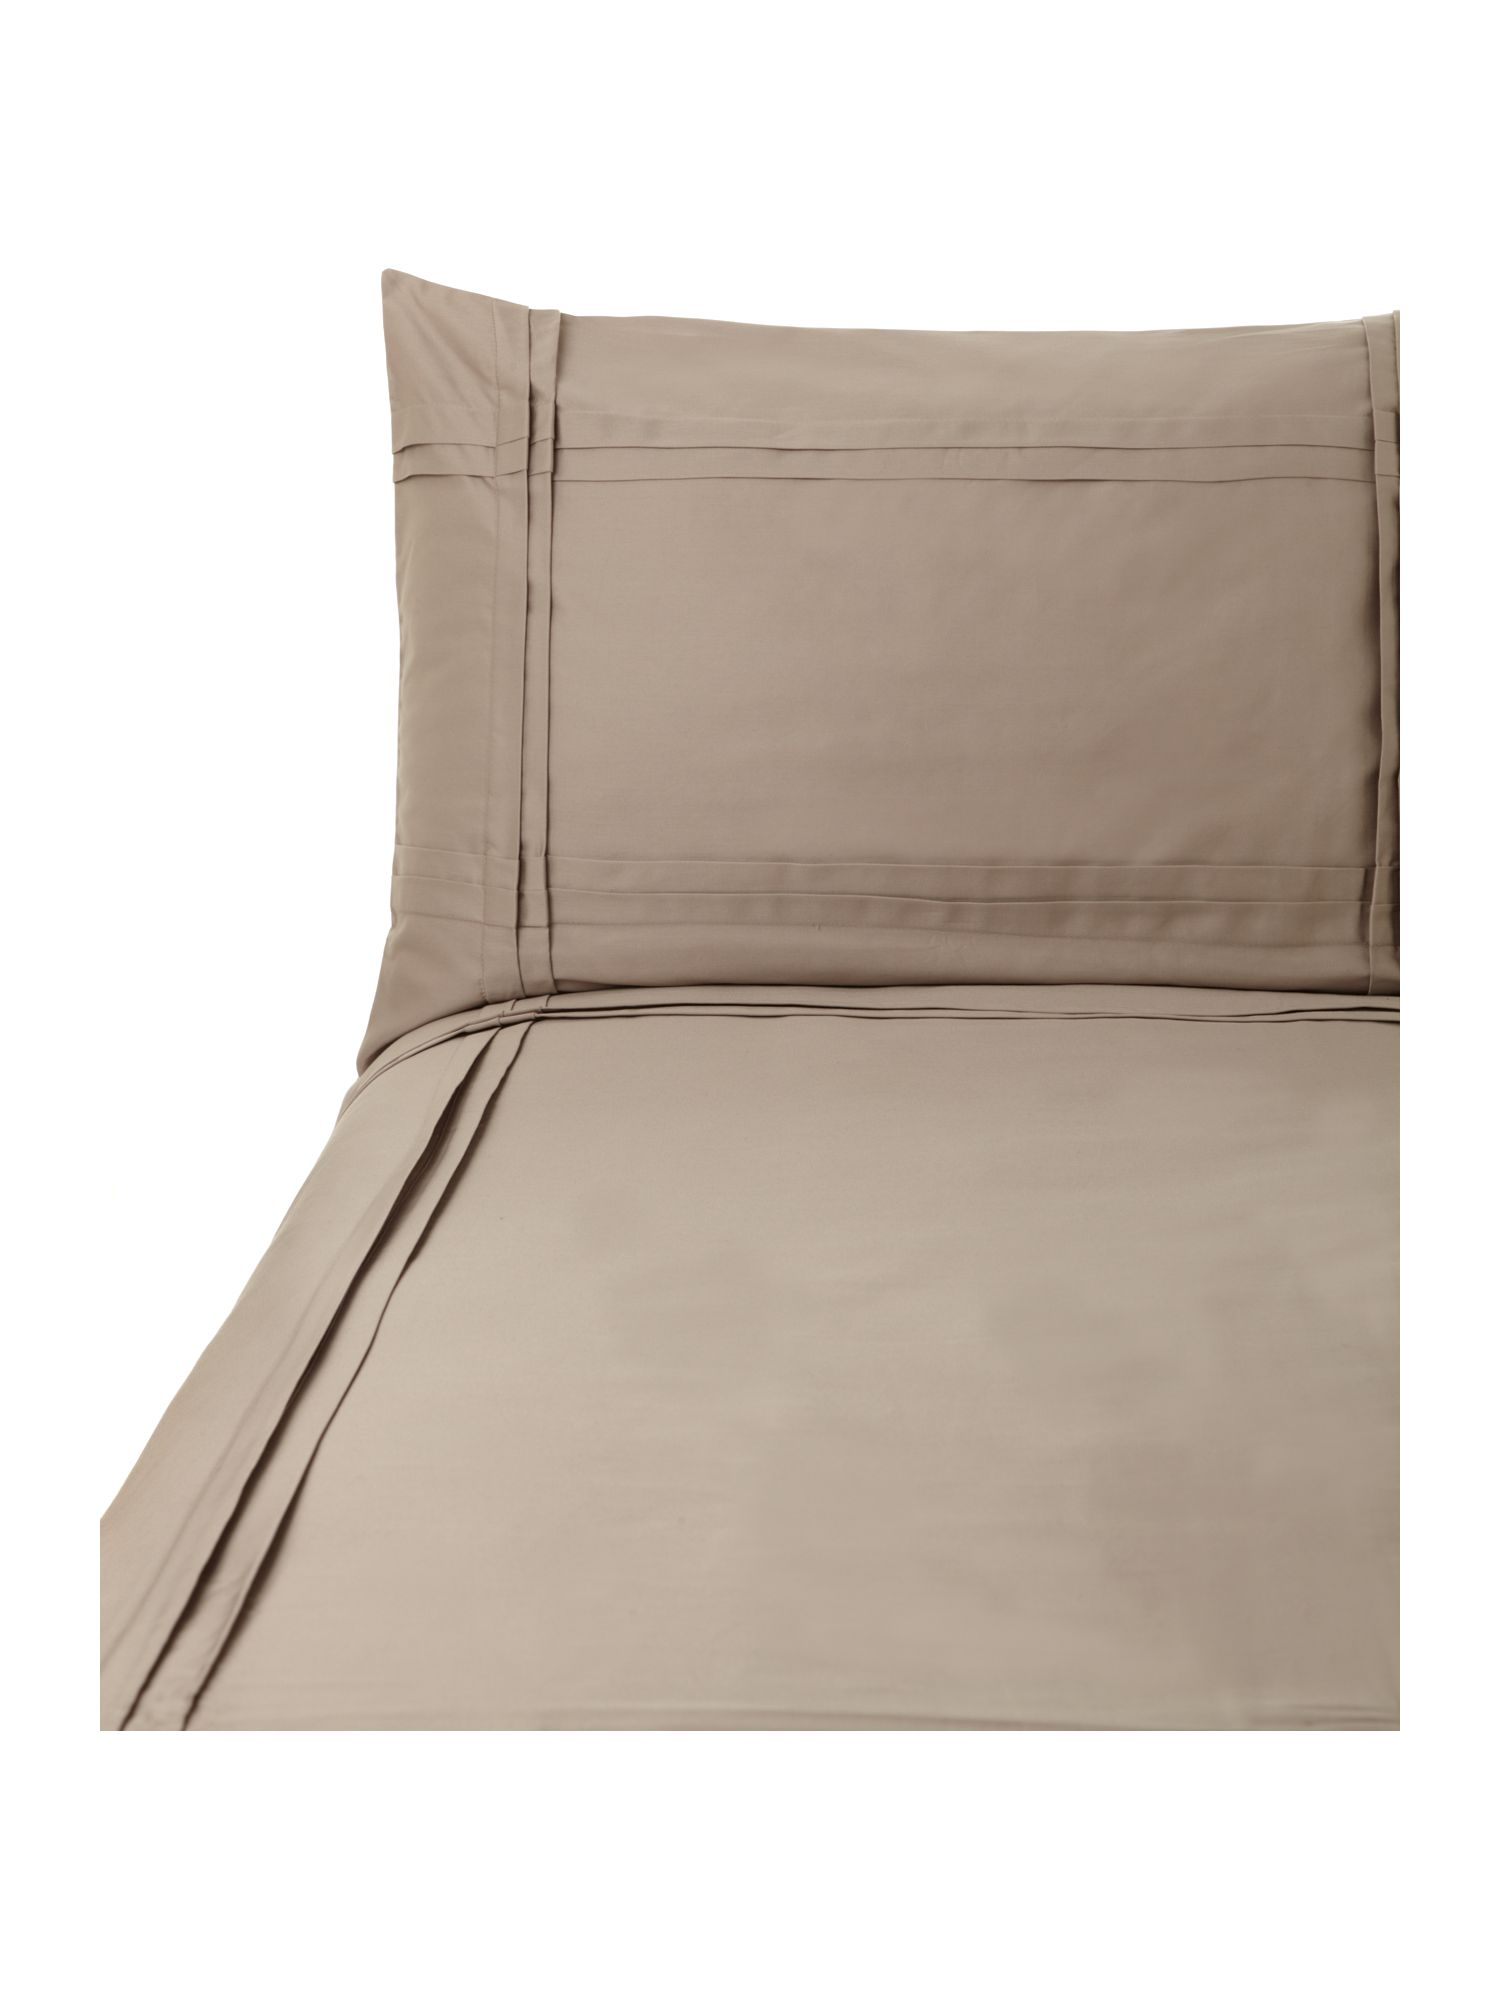 Criss cross pleat bed linen in oyster